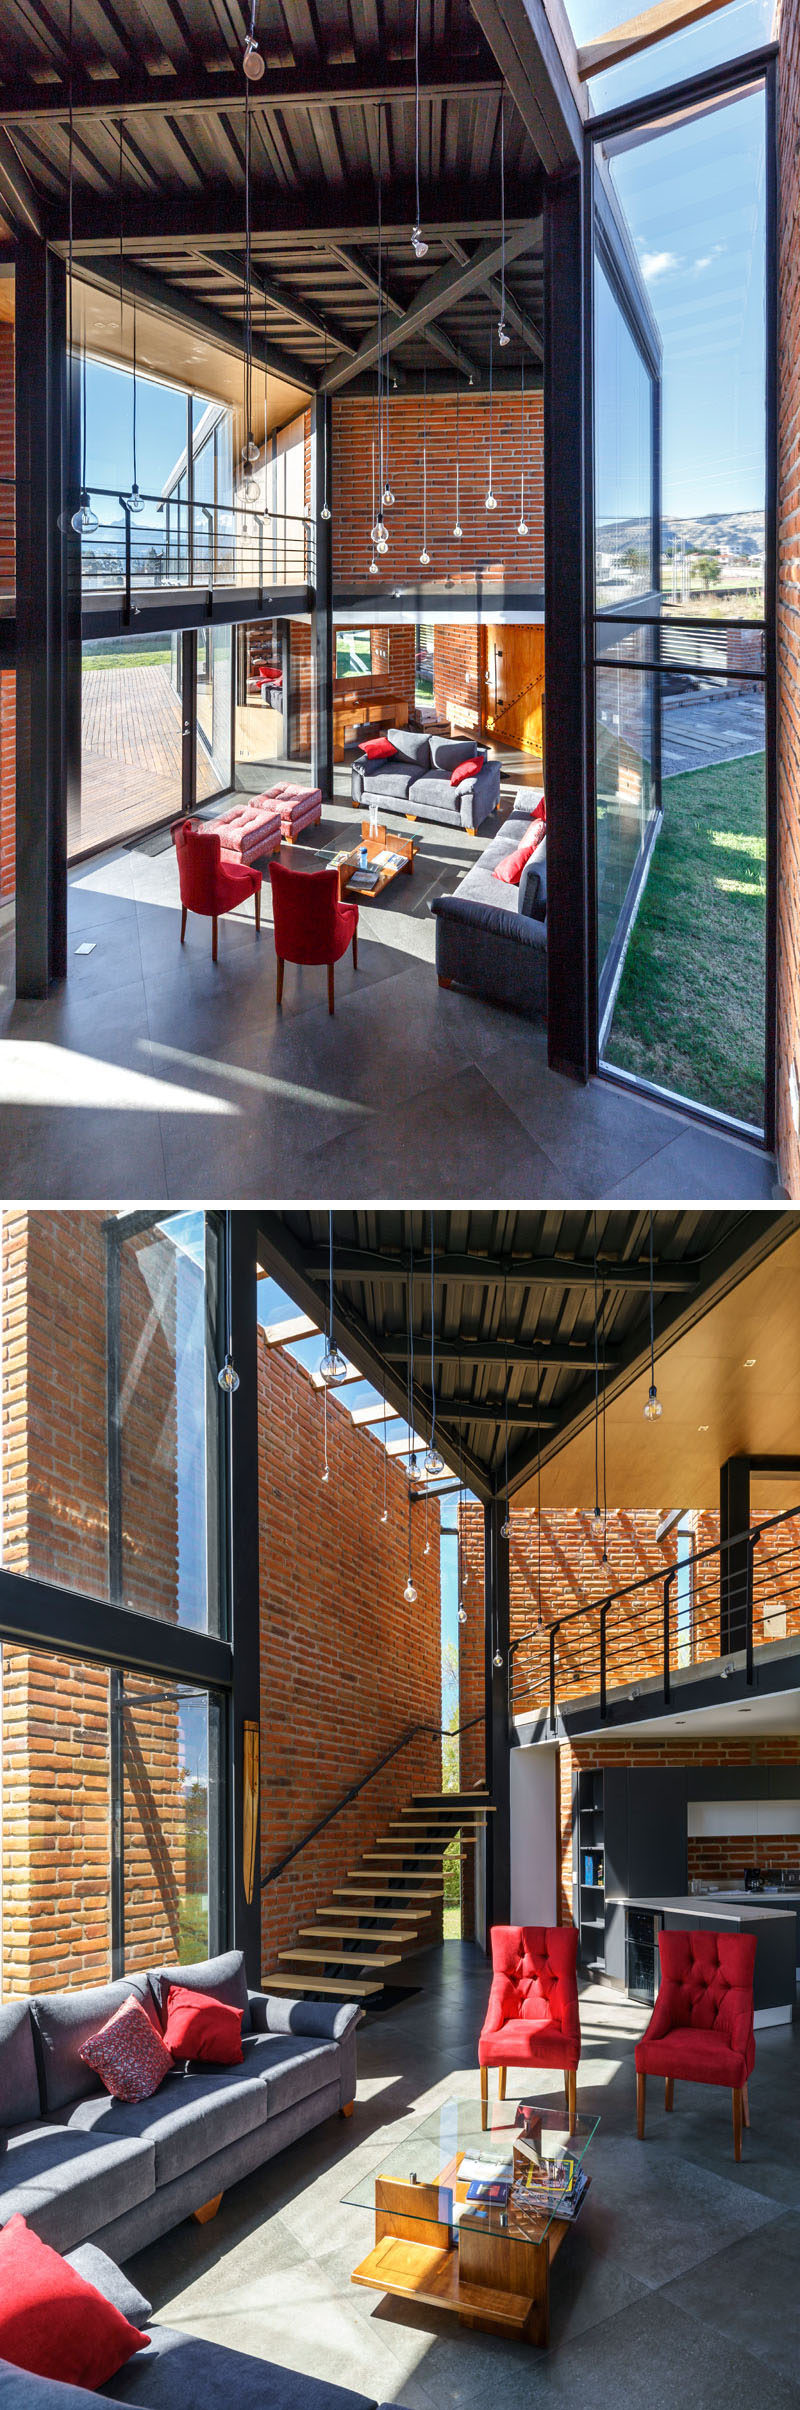 In the living room of this modern house, double height ceilings make the space feel open and airy, while the brick walls break up the glass and steel elements. #LivingRoom #HighCeilings